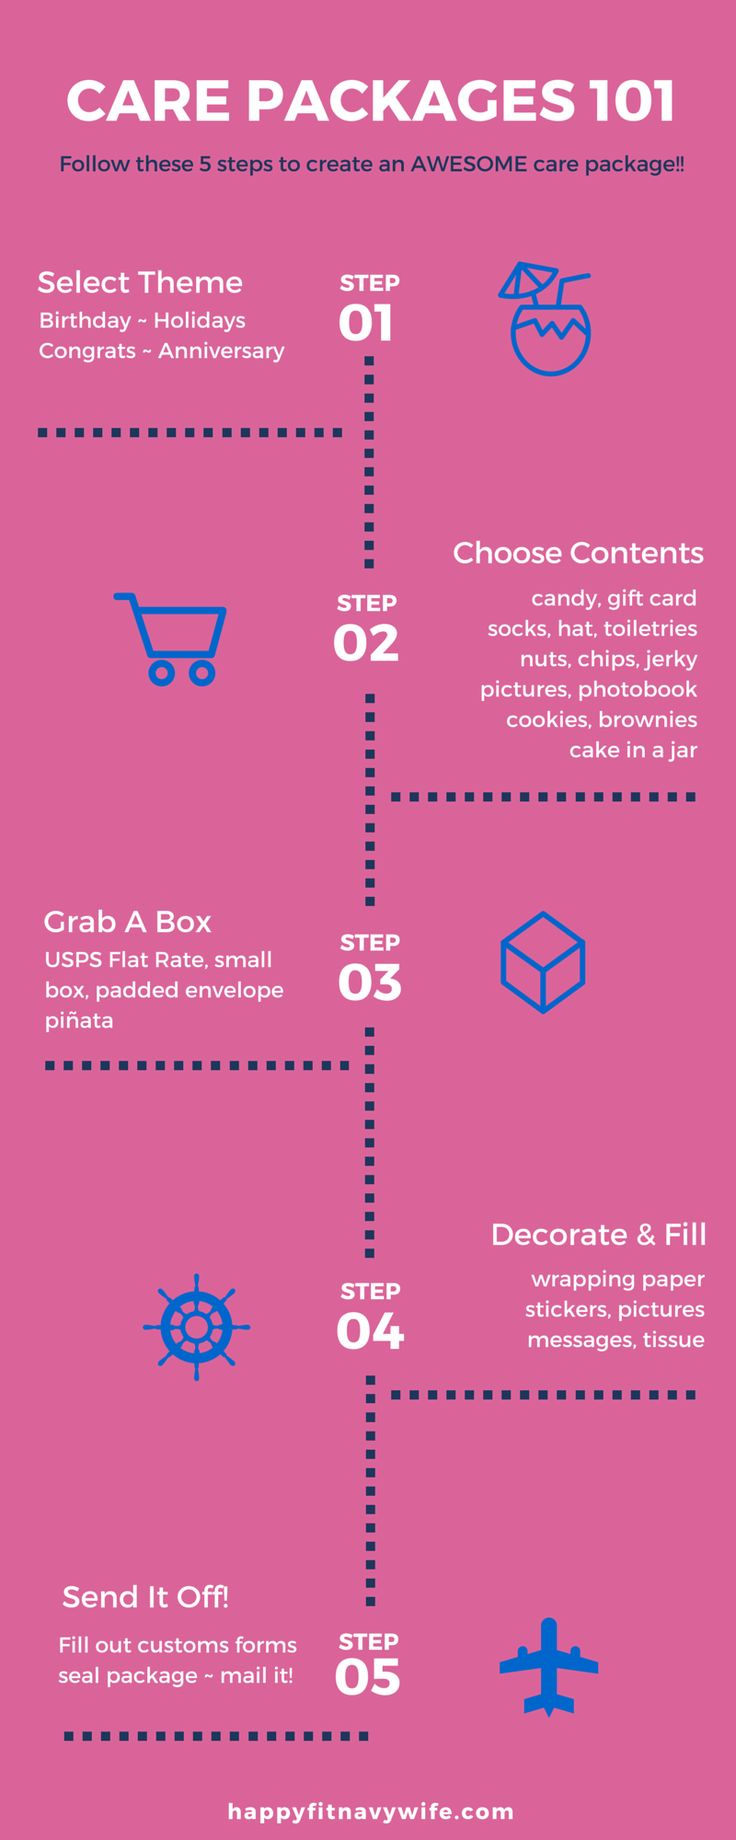 """Care Packages 101- Five Steps To Create An Awesome Care Package"" by Heather of Happyfitnavywife.com 